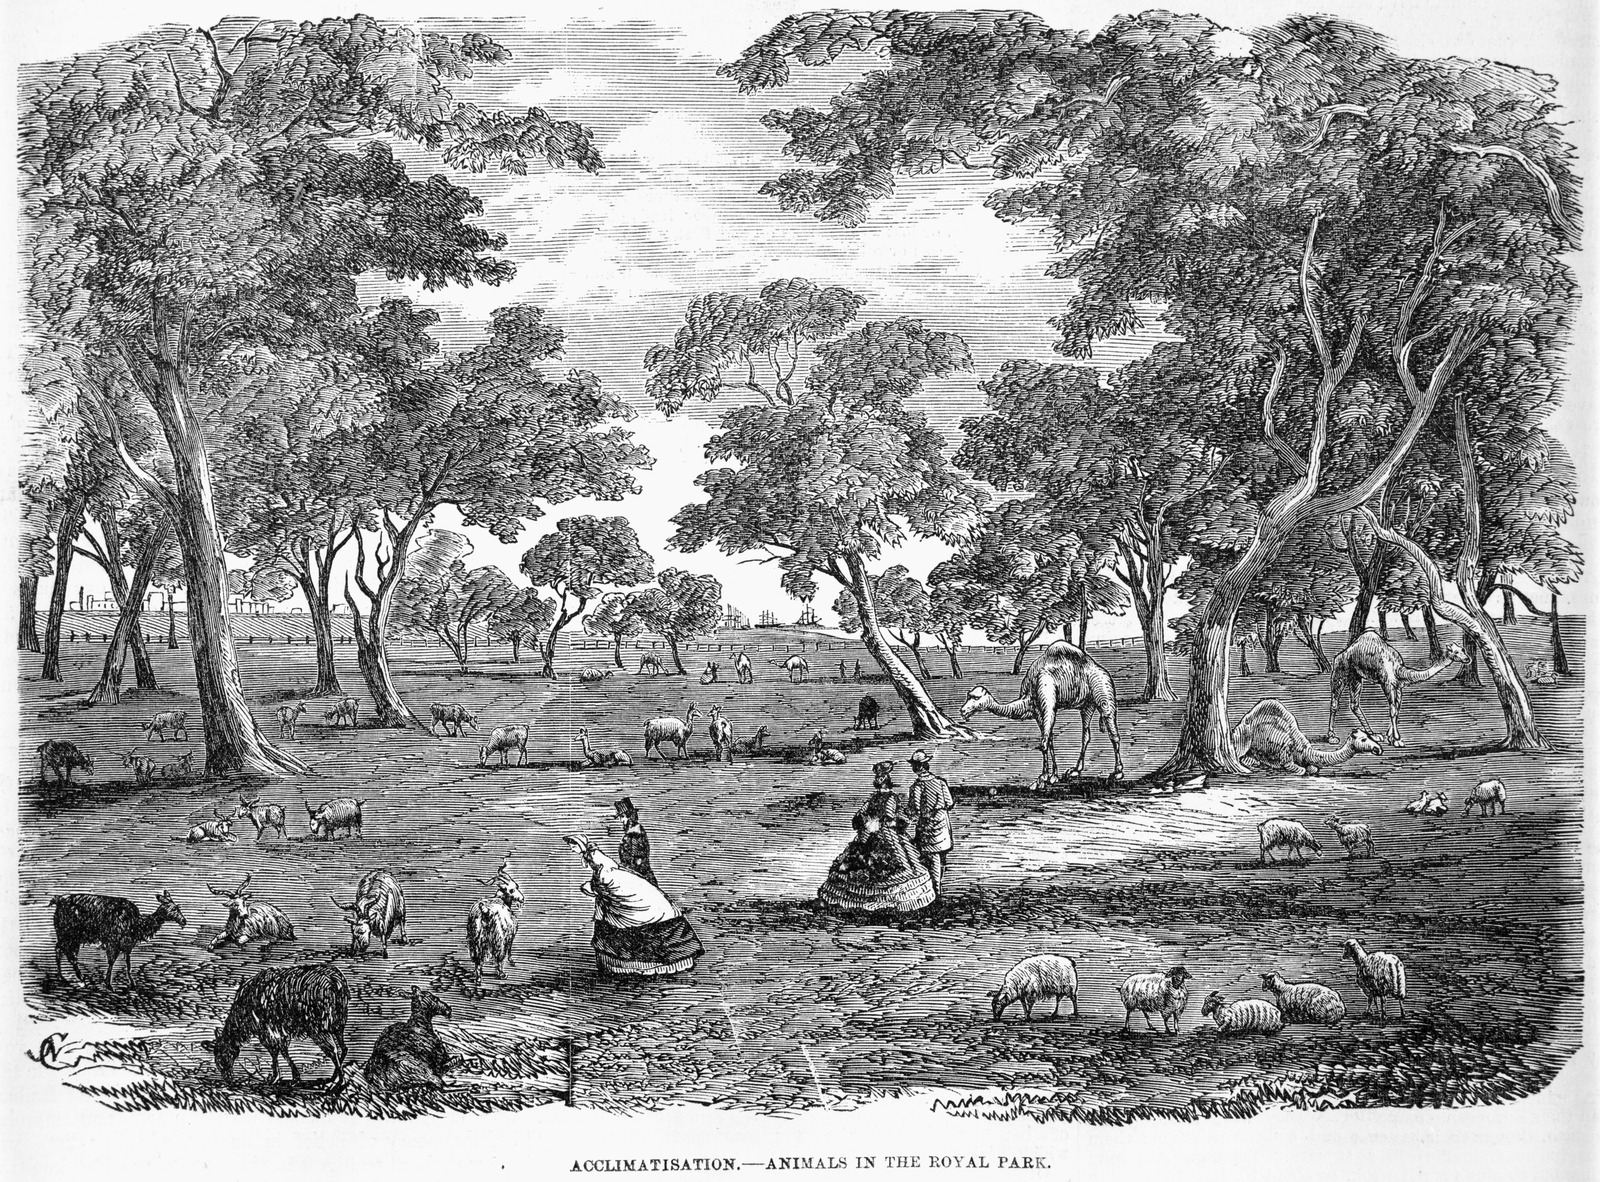 Black and white illustration of animals roaming freely in Royal Park. Several ladies and gentlemen watch on